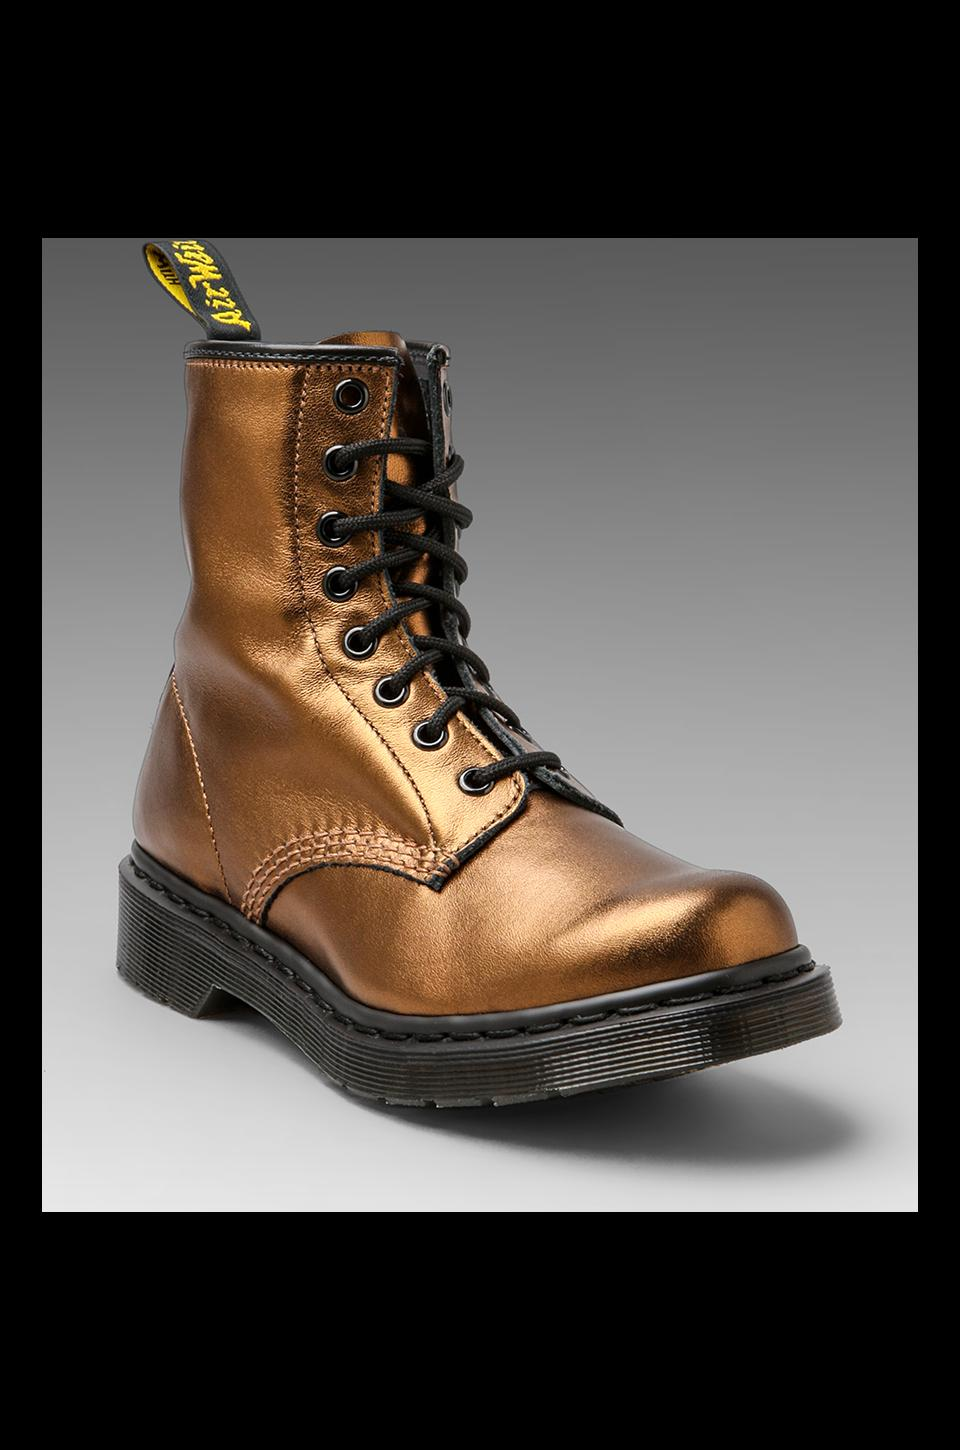 Dr. Martens 8-Eye Boot in Bronze